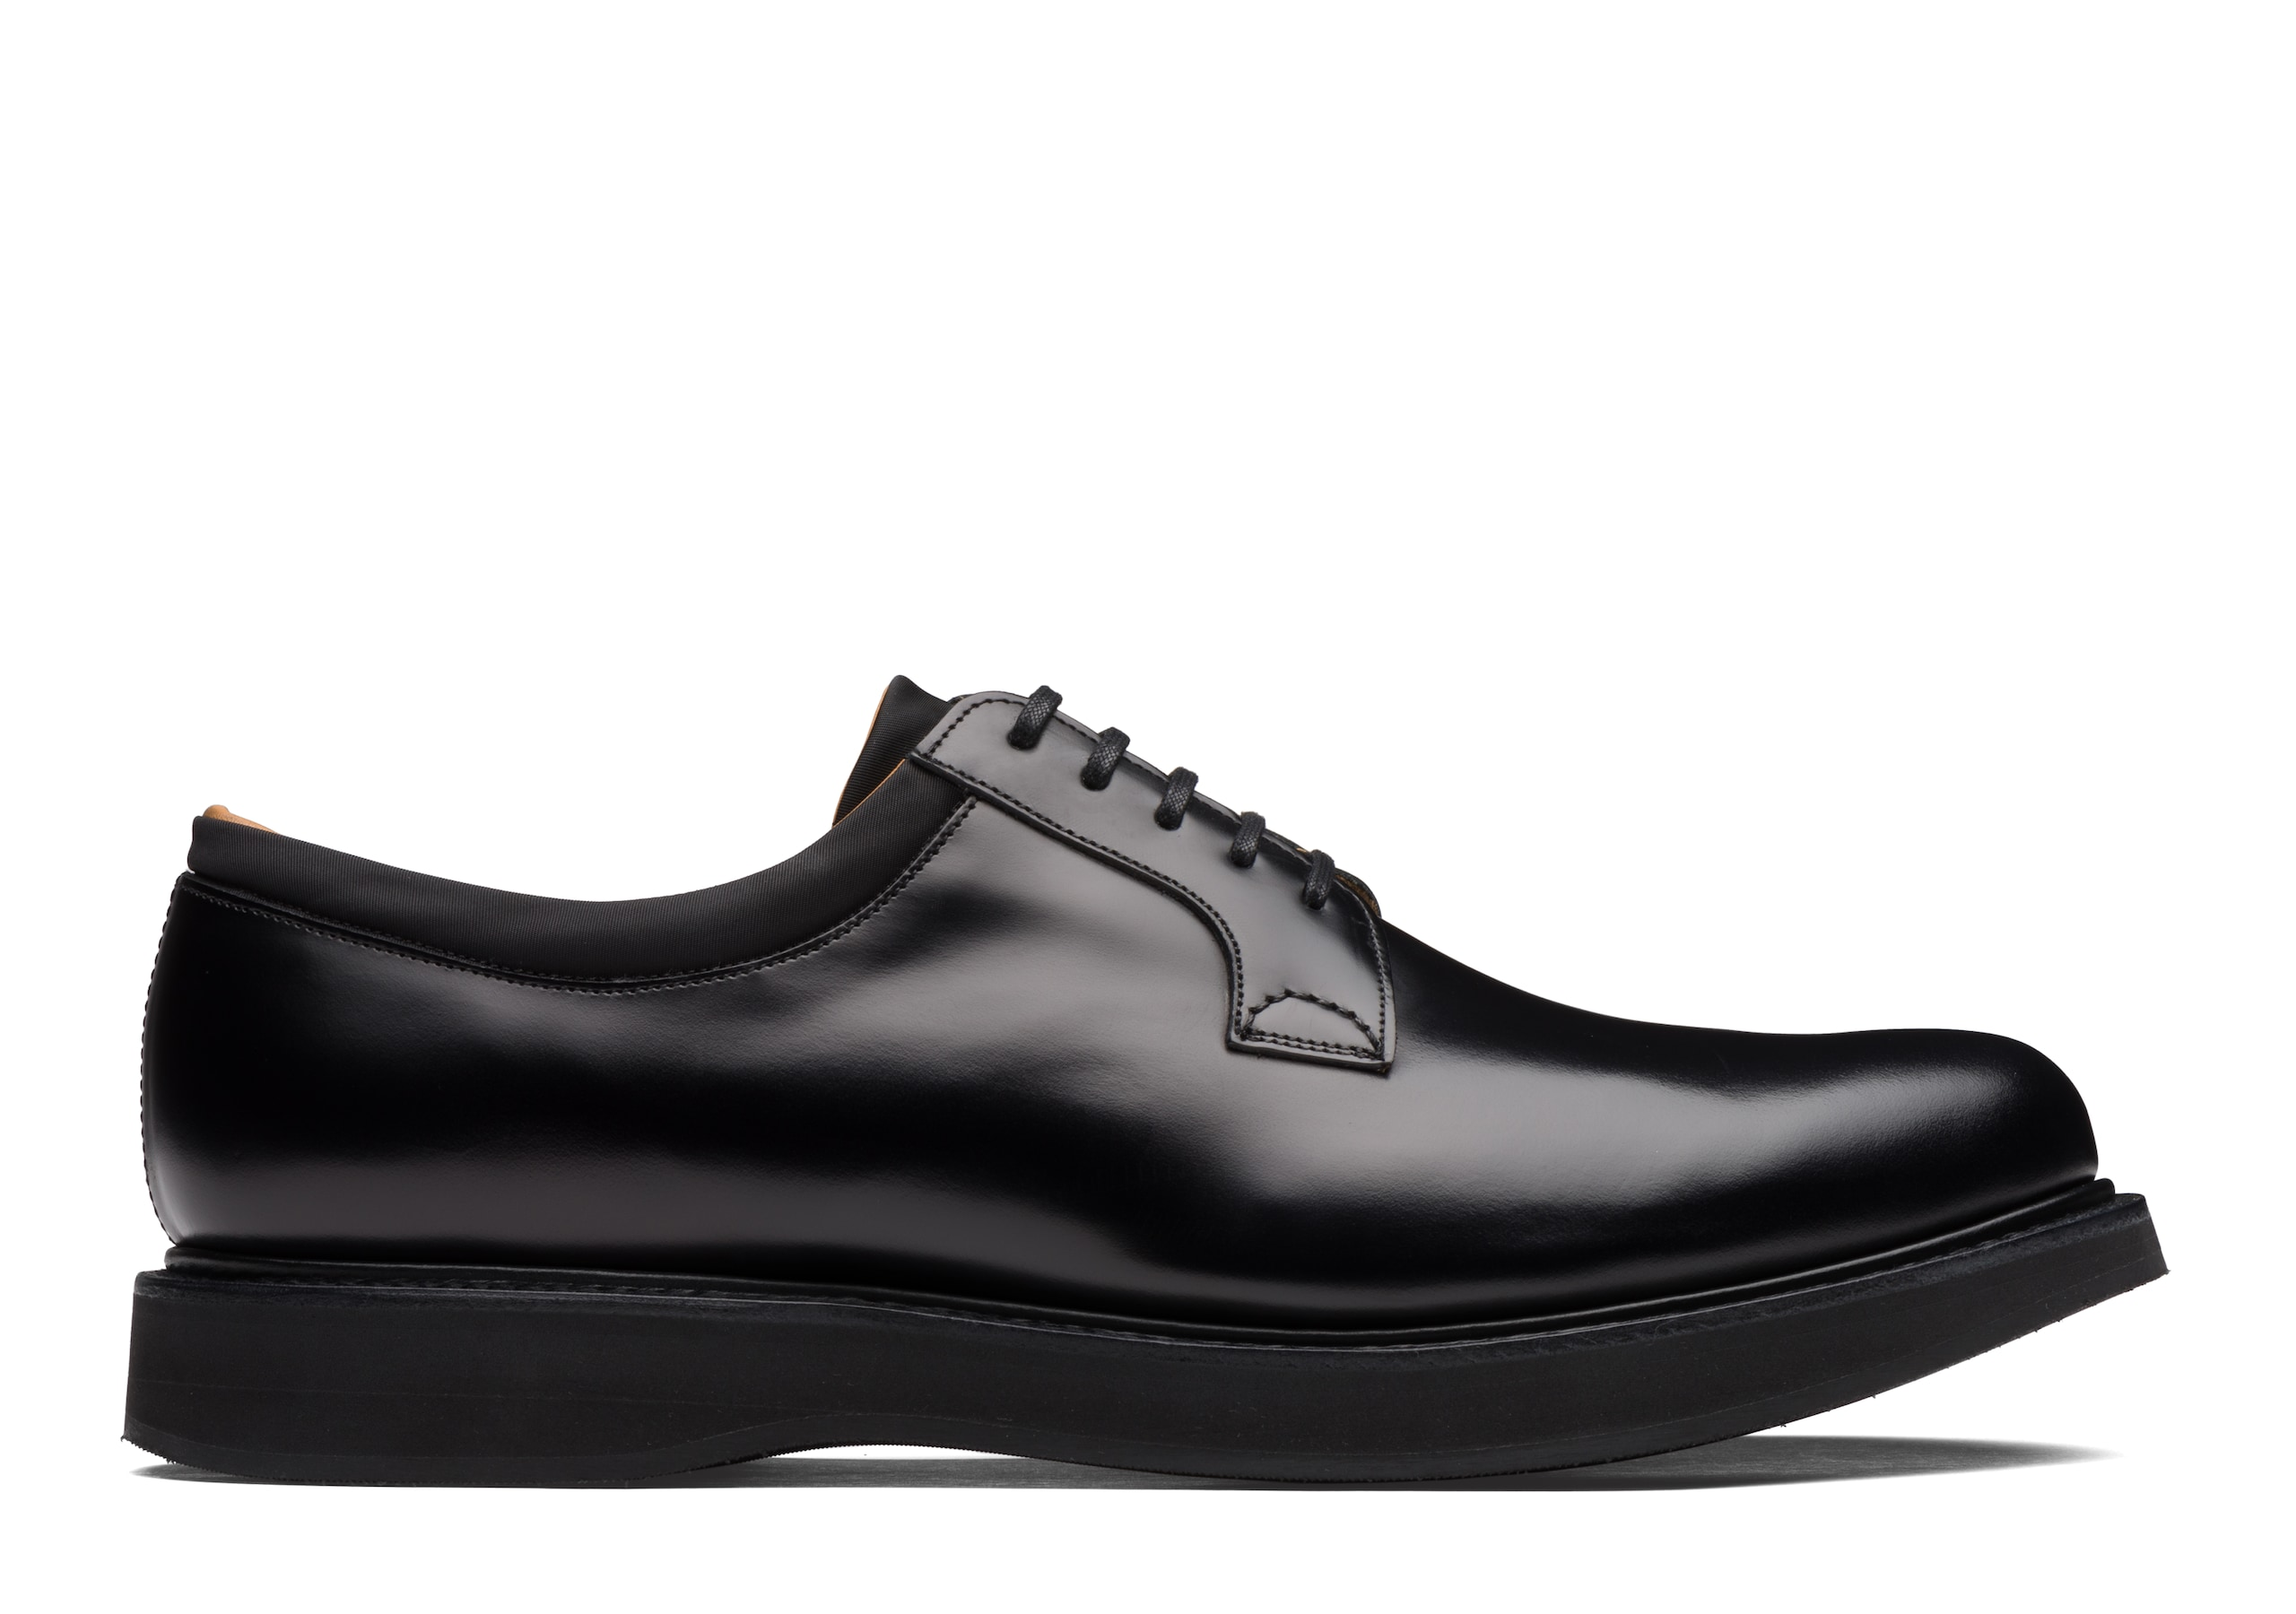 Brandon Church's Rois Calf Leather Derby Black